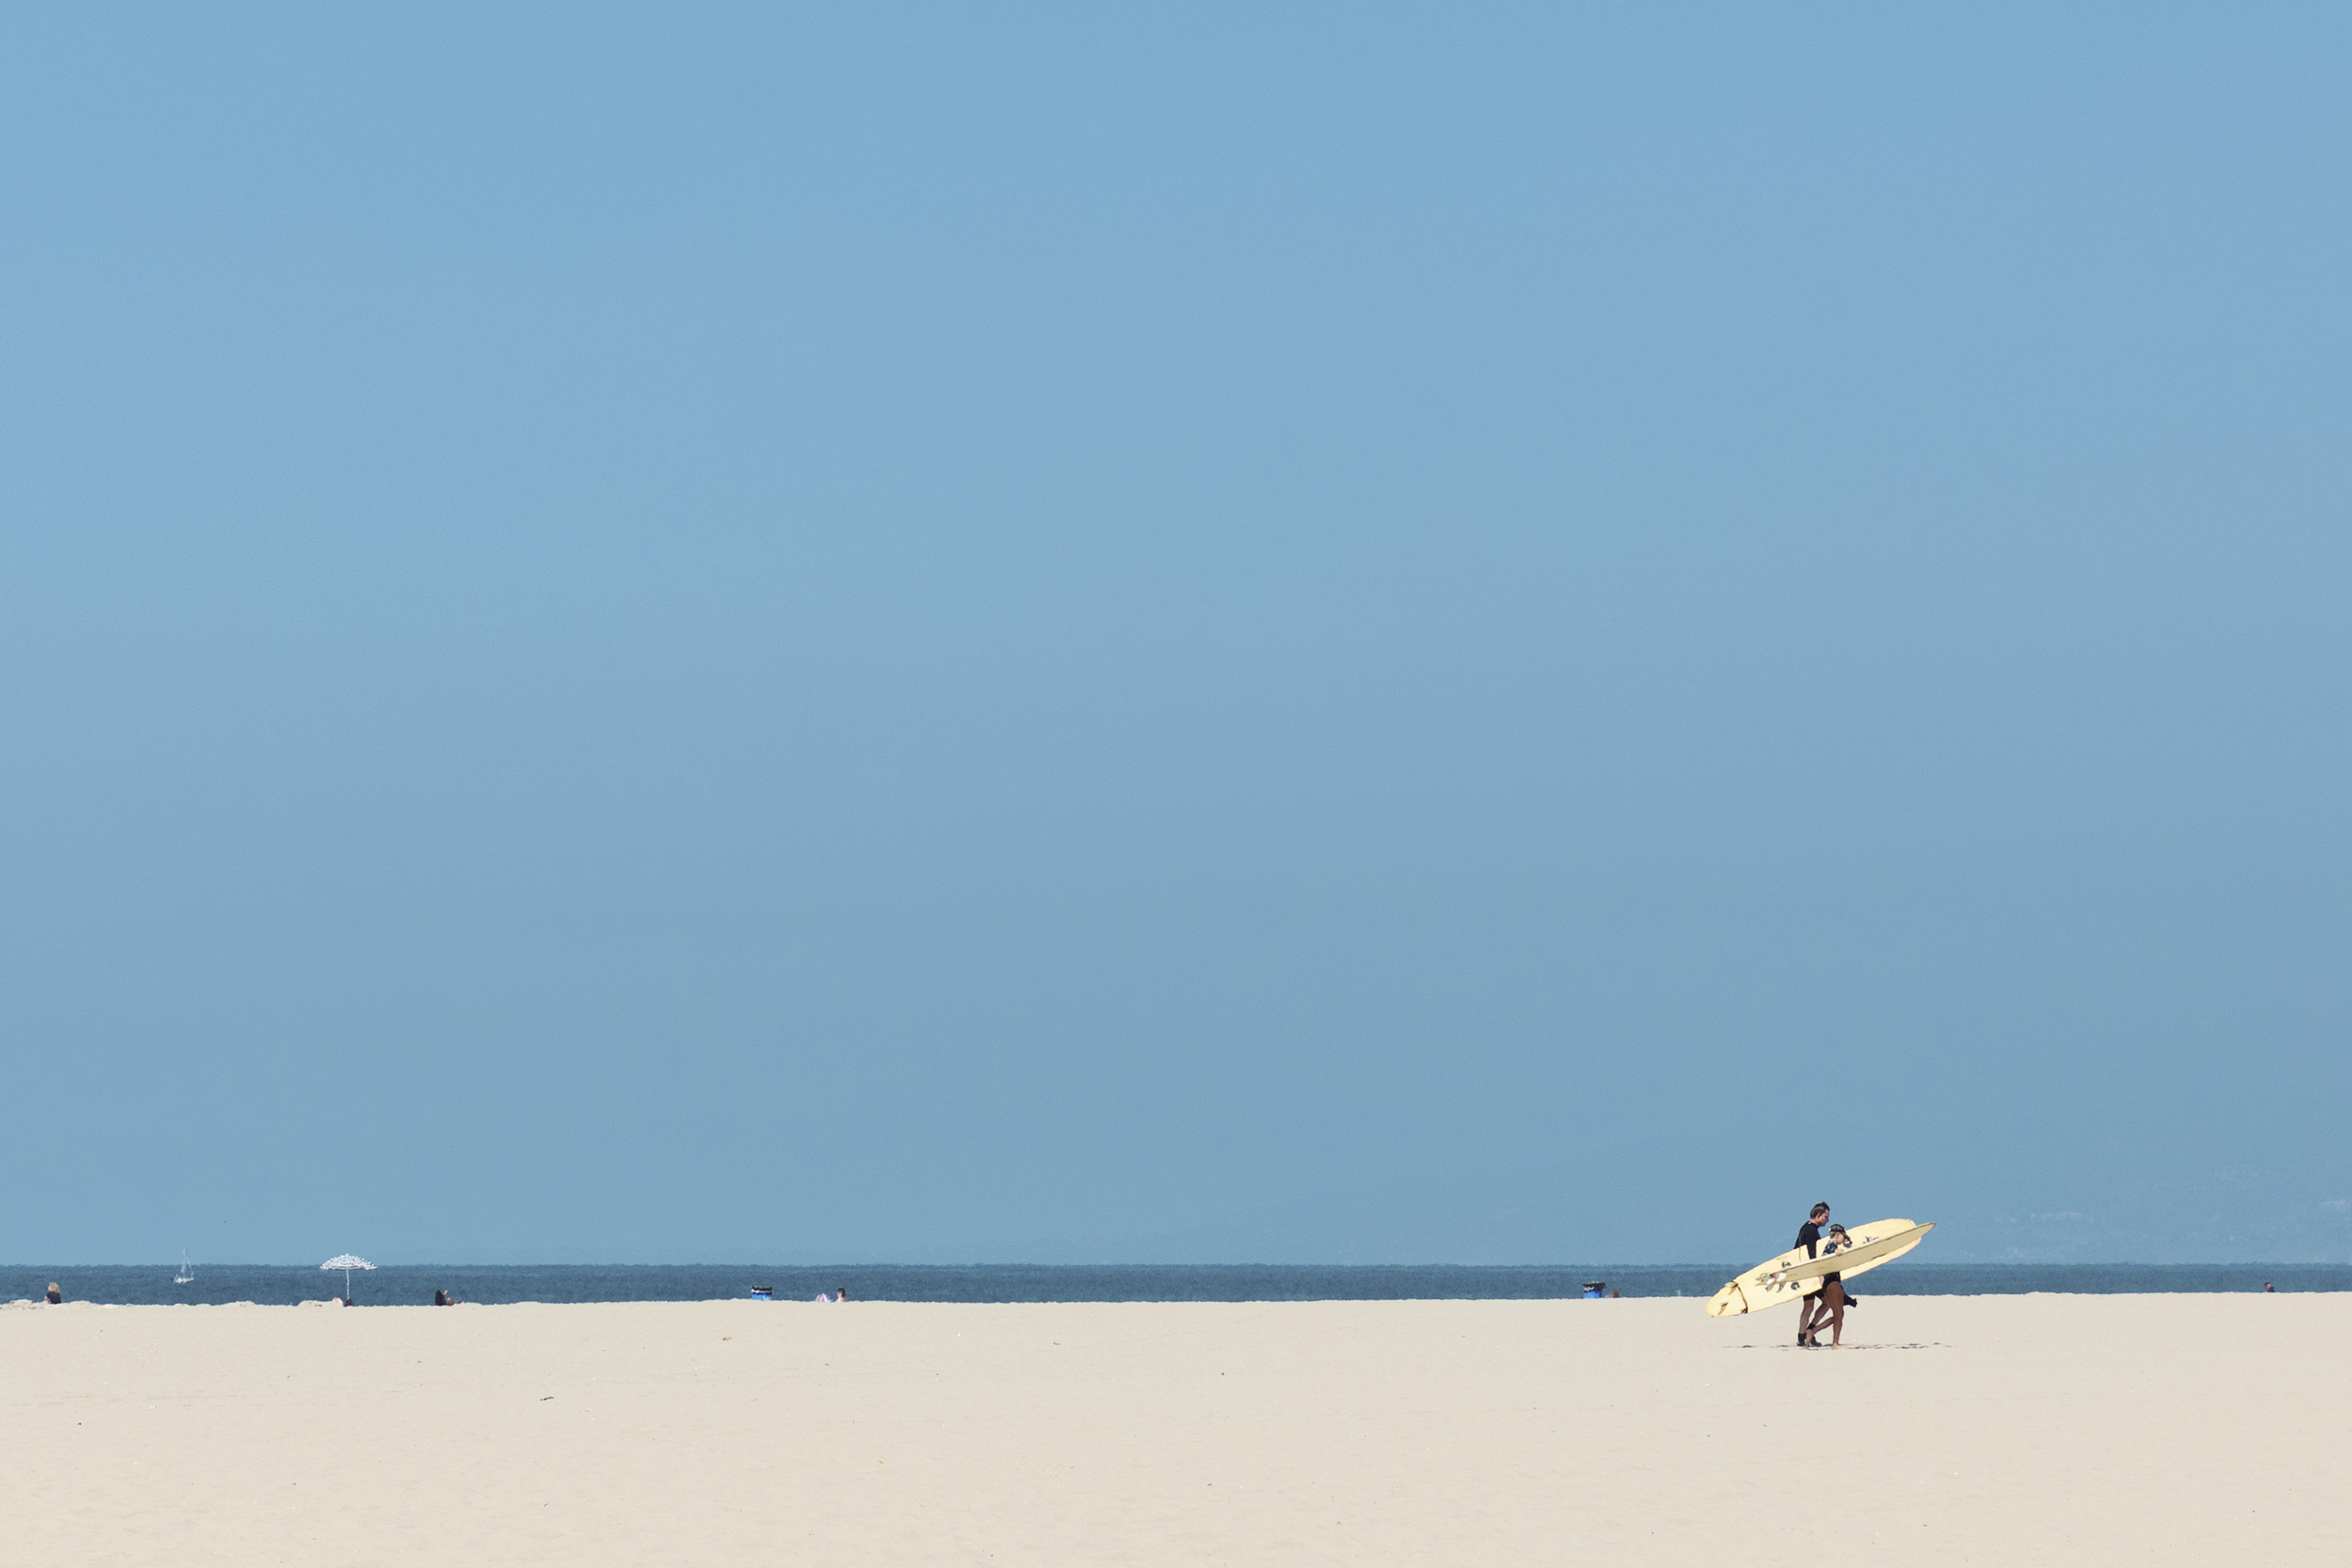 Surfer walking on the beach with a long board. Kimberly Genevieve lifestyle photographer Los Angeles